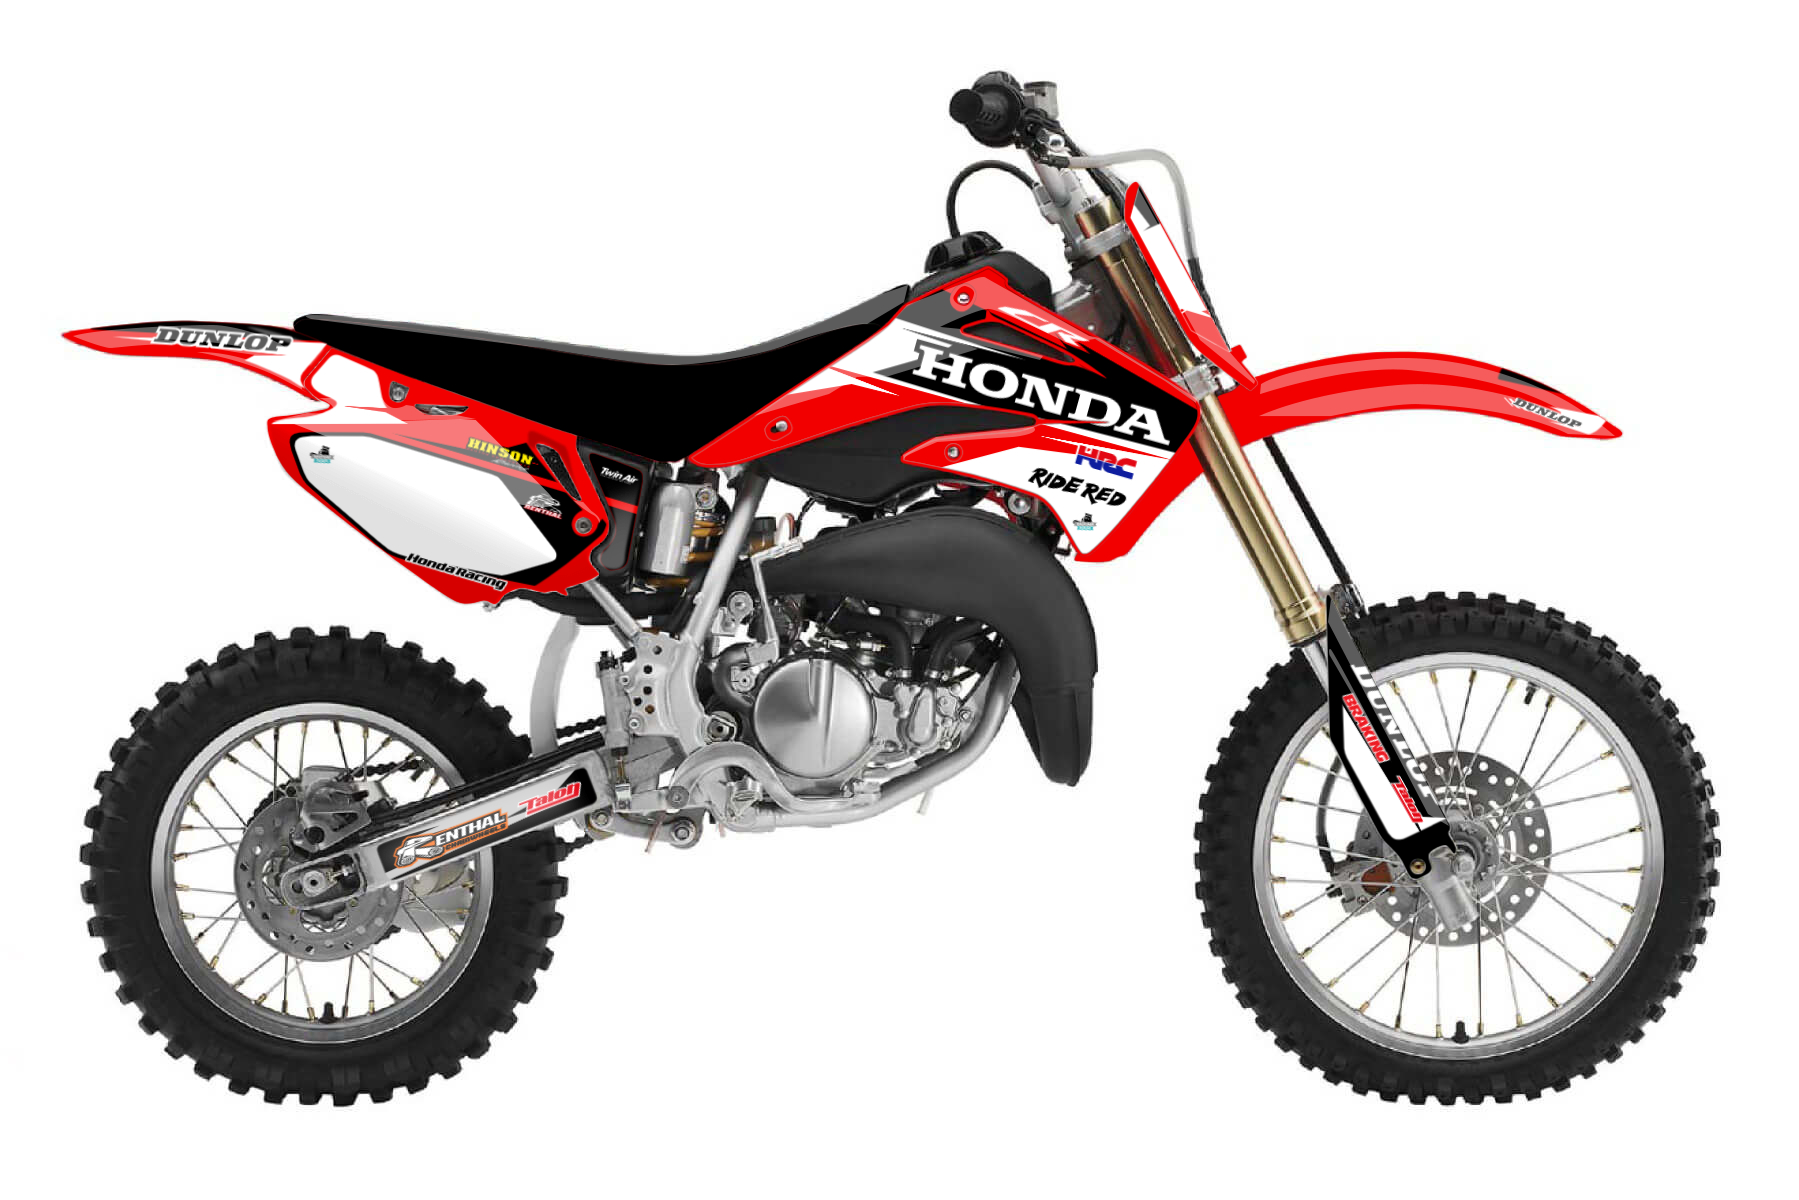 Honda CR 85 MX Graphic Kits  The CR 85 is the perfect companion to raise your kids into the world of mx. It provides everything you need: safety, power and quality.